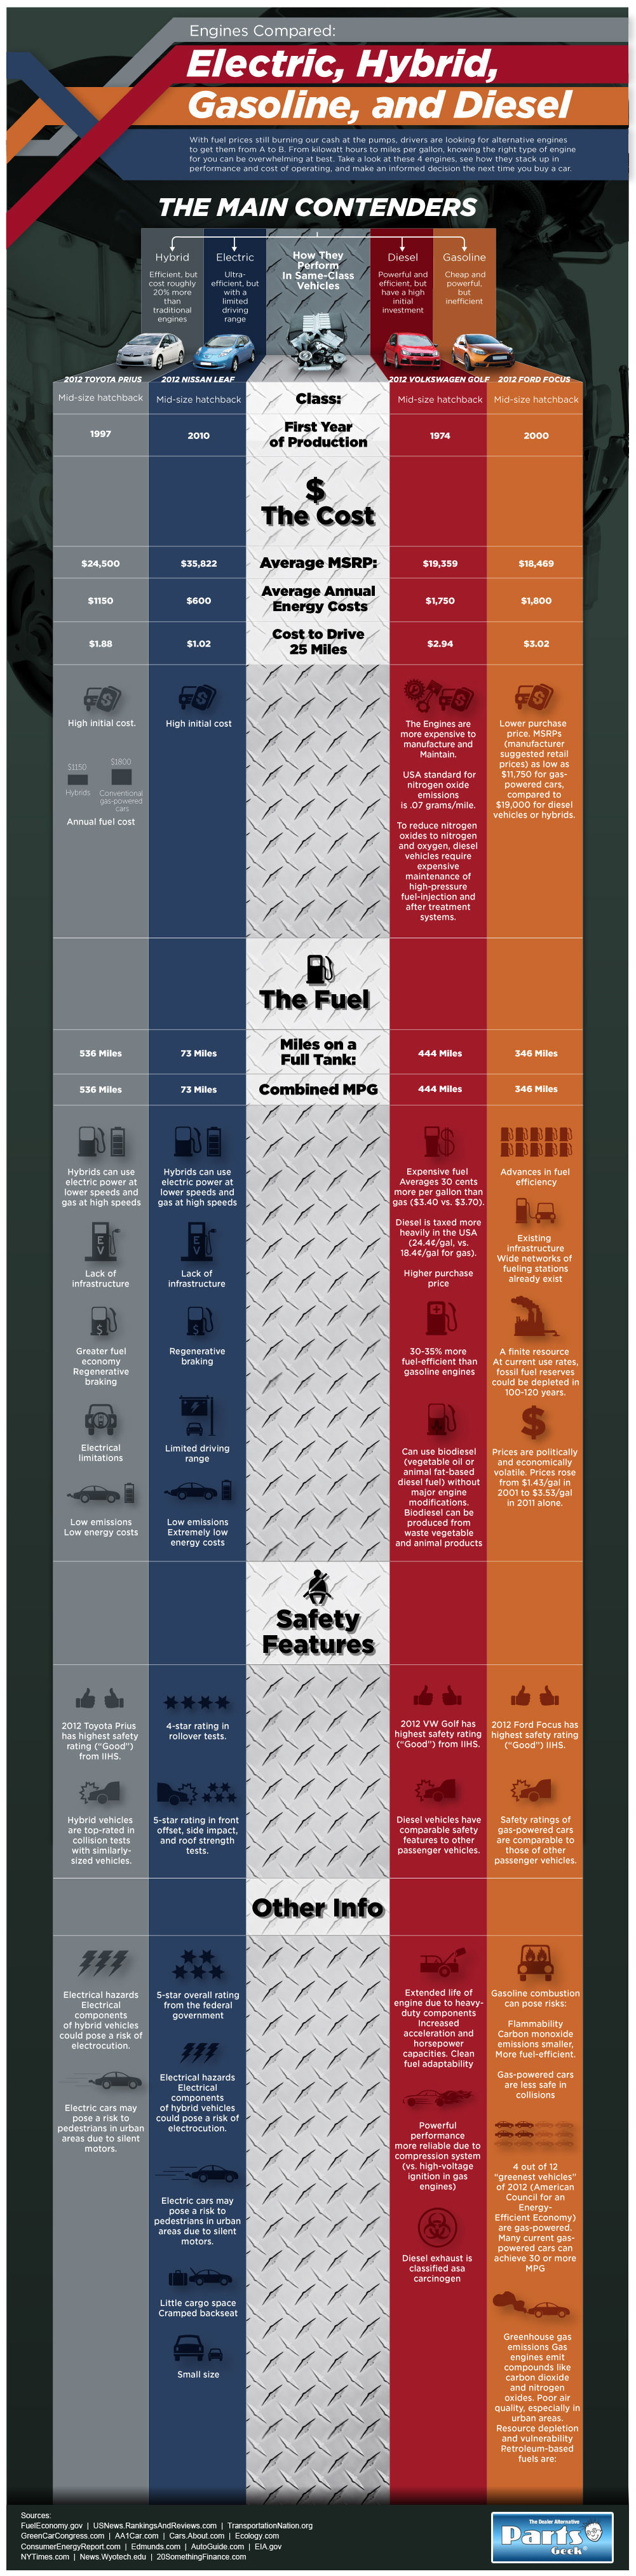 Engines Compared: Electric, Hybrid, Gasoline and Diesel